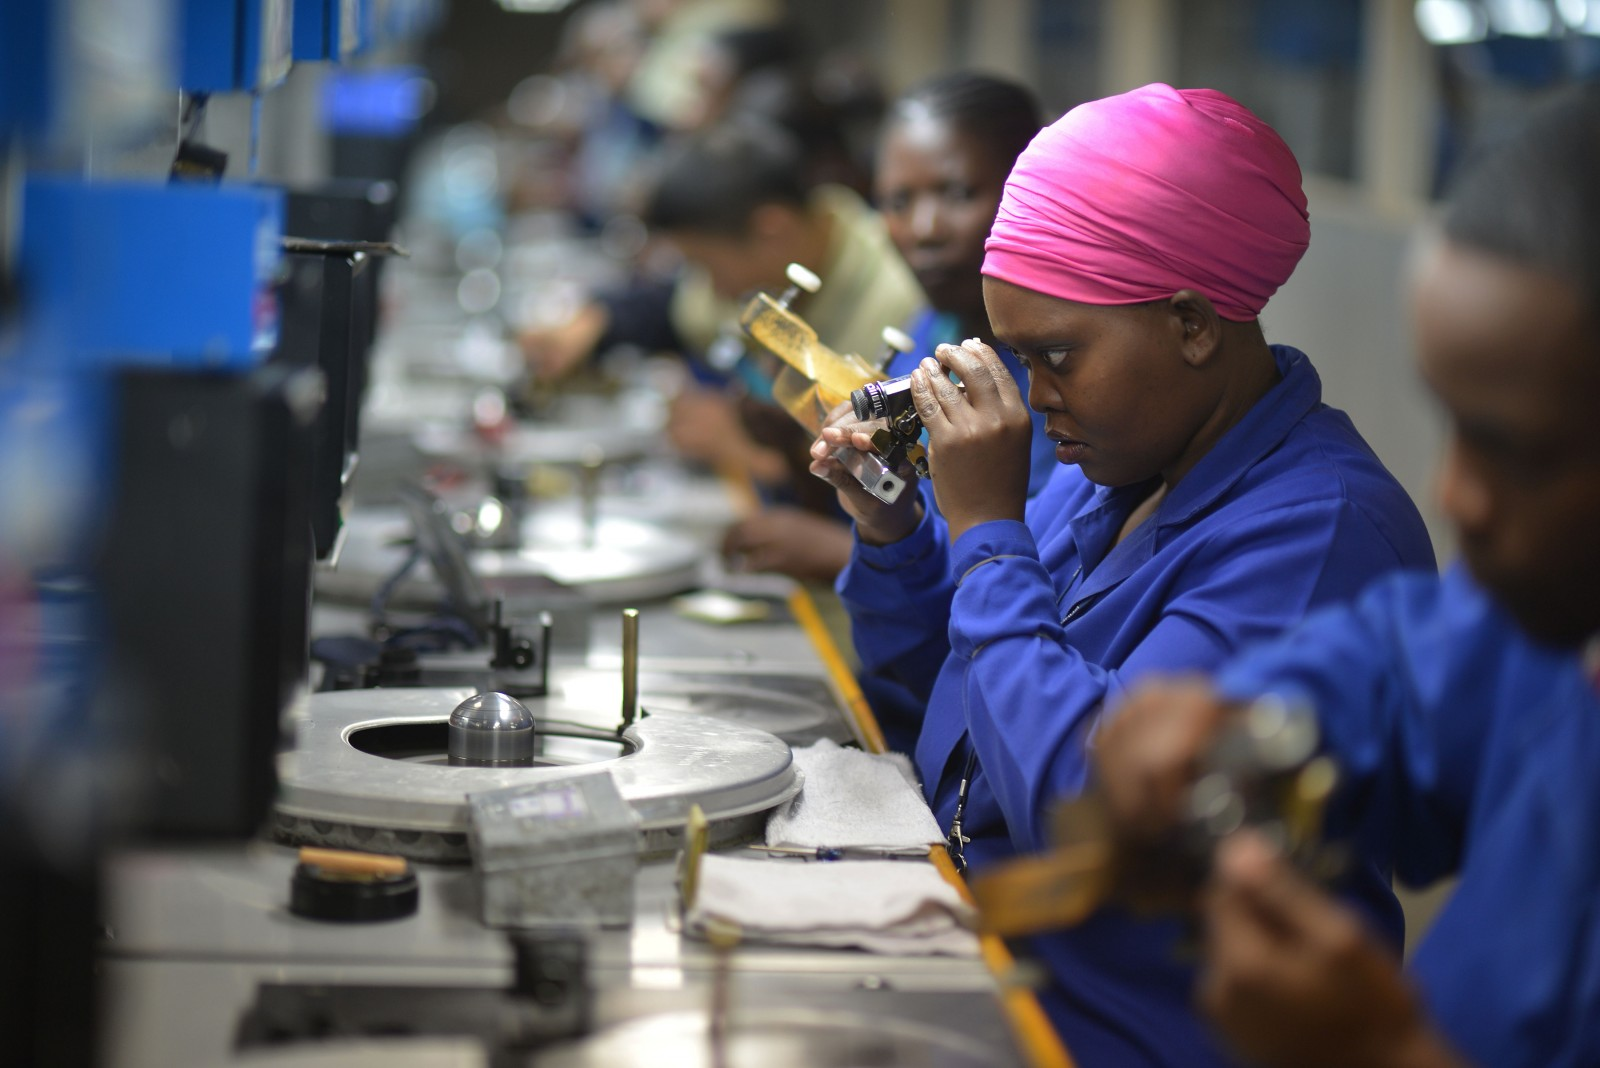 Employees are at work at a Diamond cutting and polishing company in Gaborone, Botswana on March 11, 2015. AFP PHOTO/MONIRUL BHUIYAN / AFP / Monirul Bhuiyan